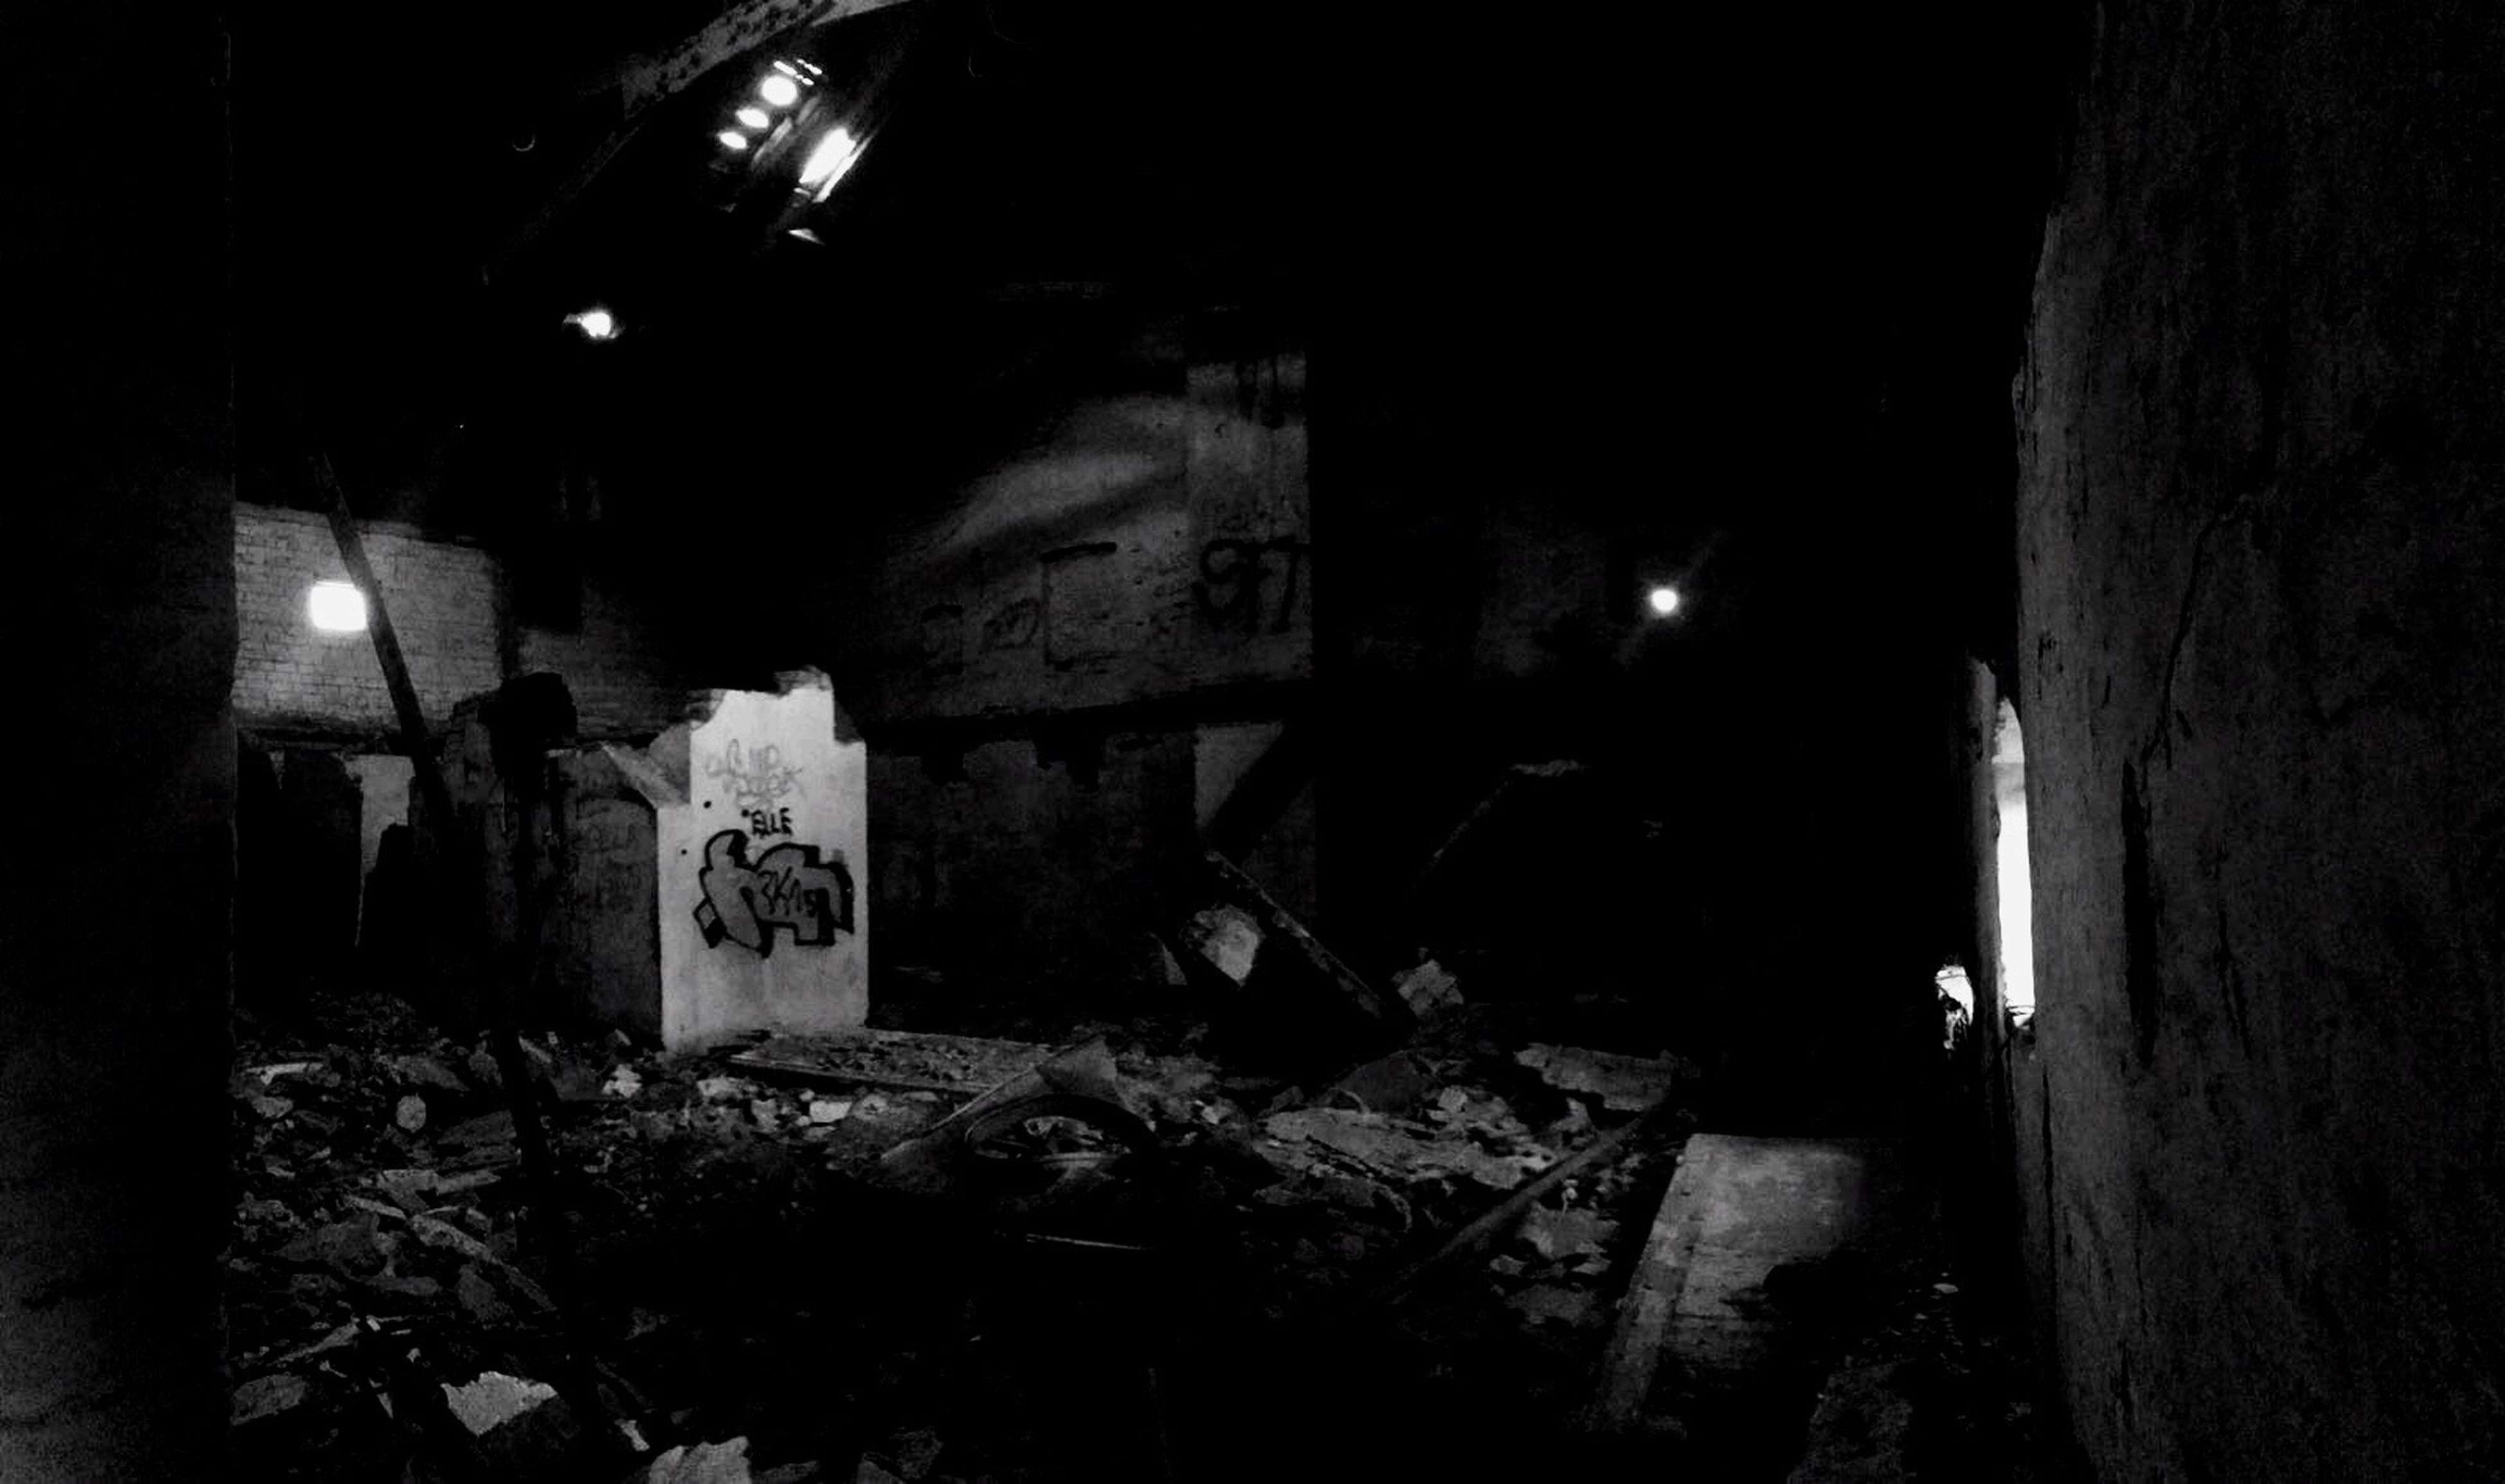 night, abandoned, illuminated, built structure, architecture, old, obsolete, damaged, run-down, building exterior, wall - building feature, deterioration, weathered, graffiti, outdoors, dark, building, no people, plant, messy